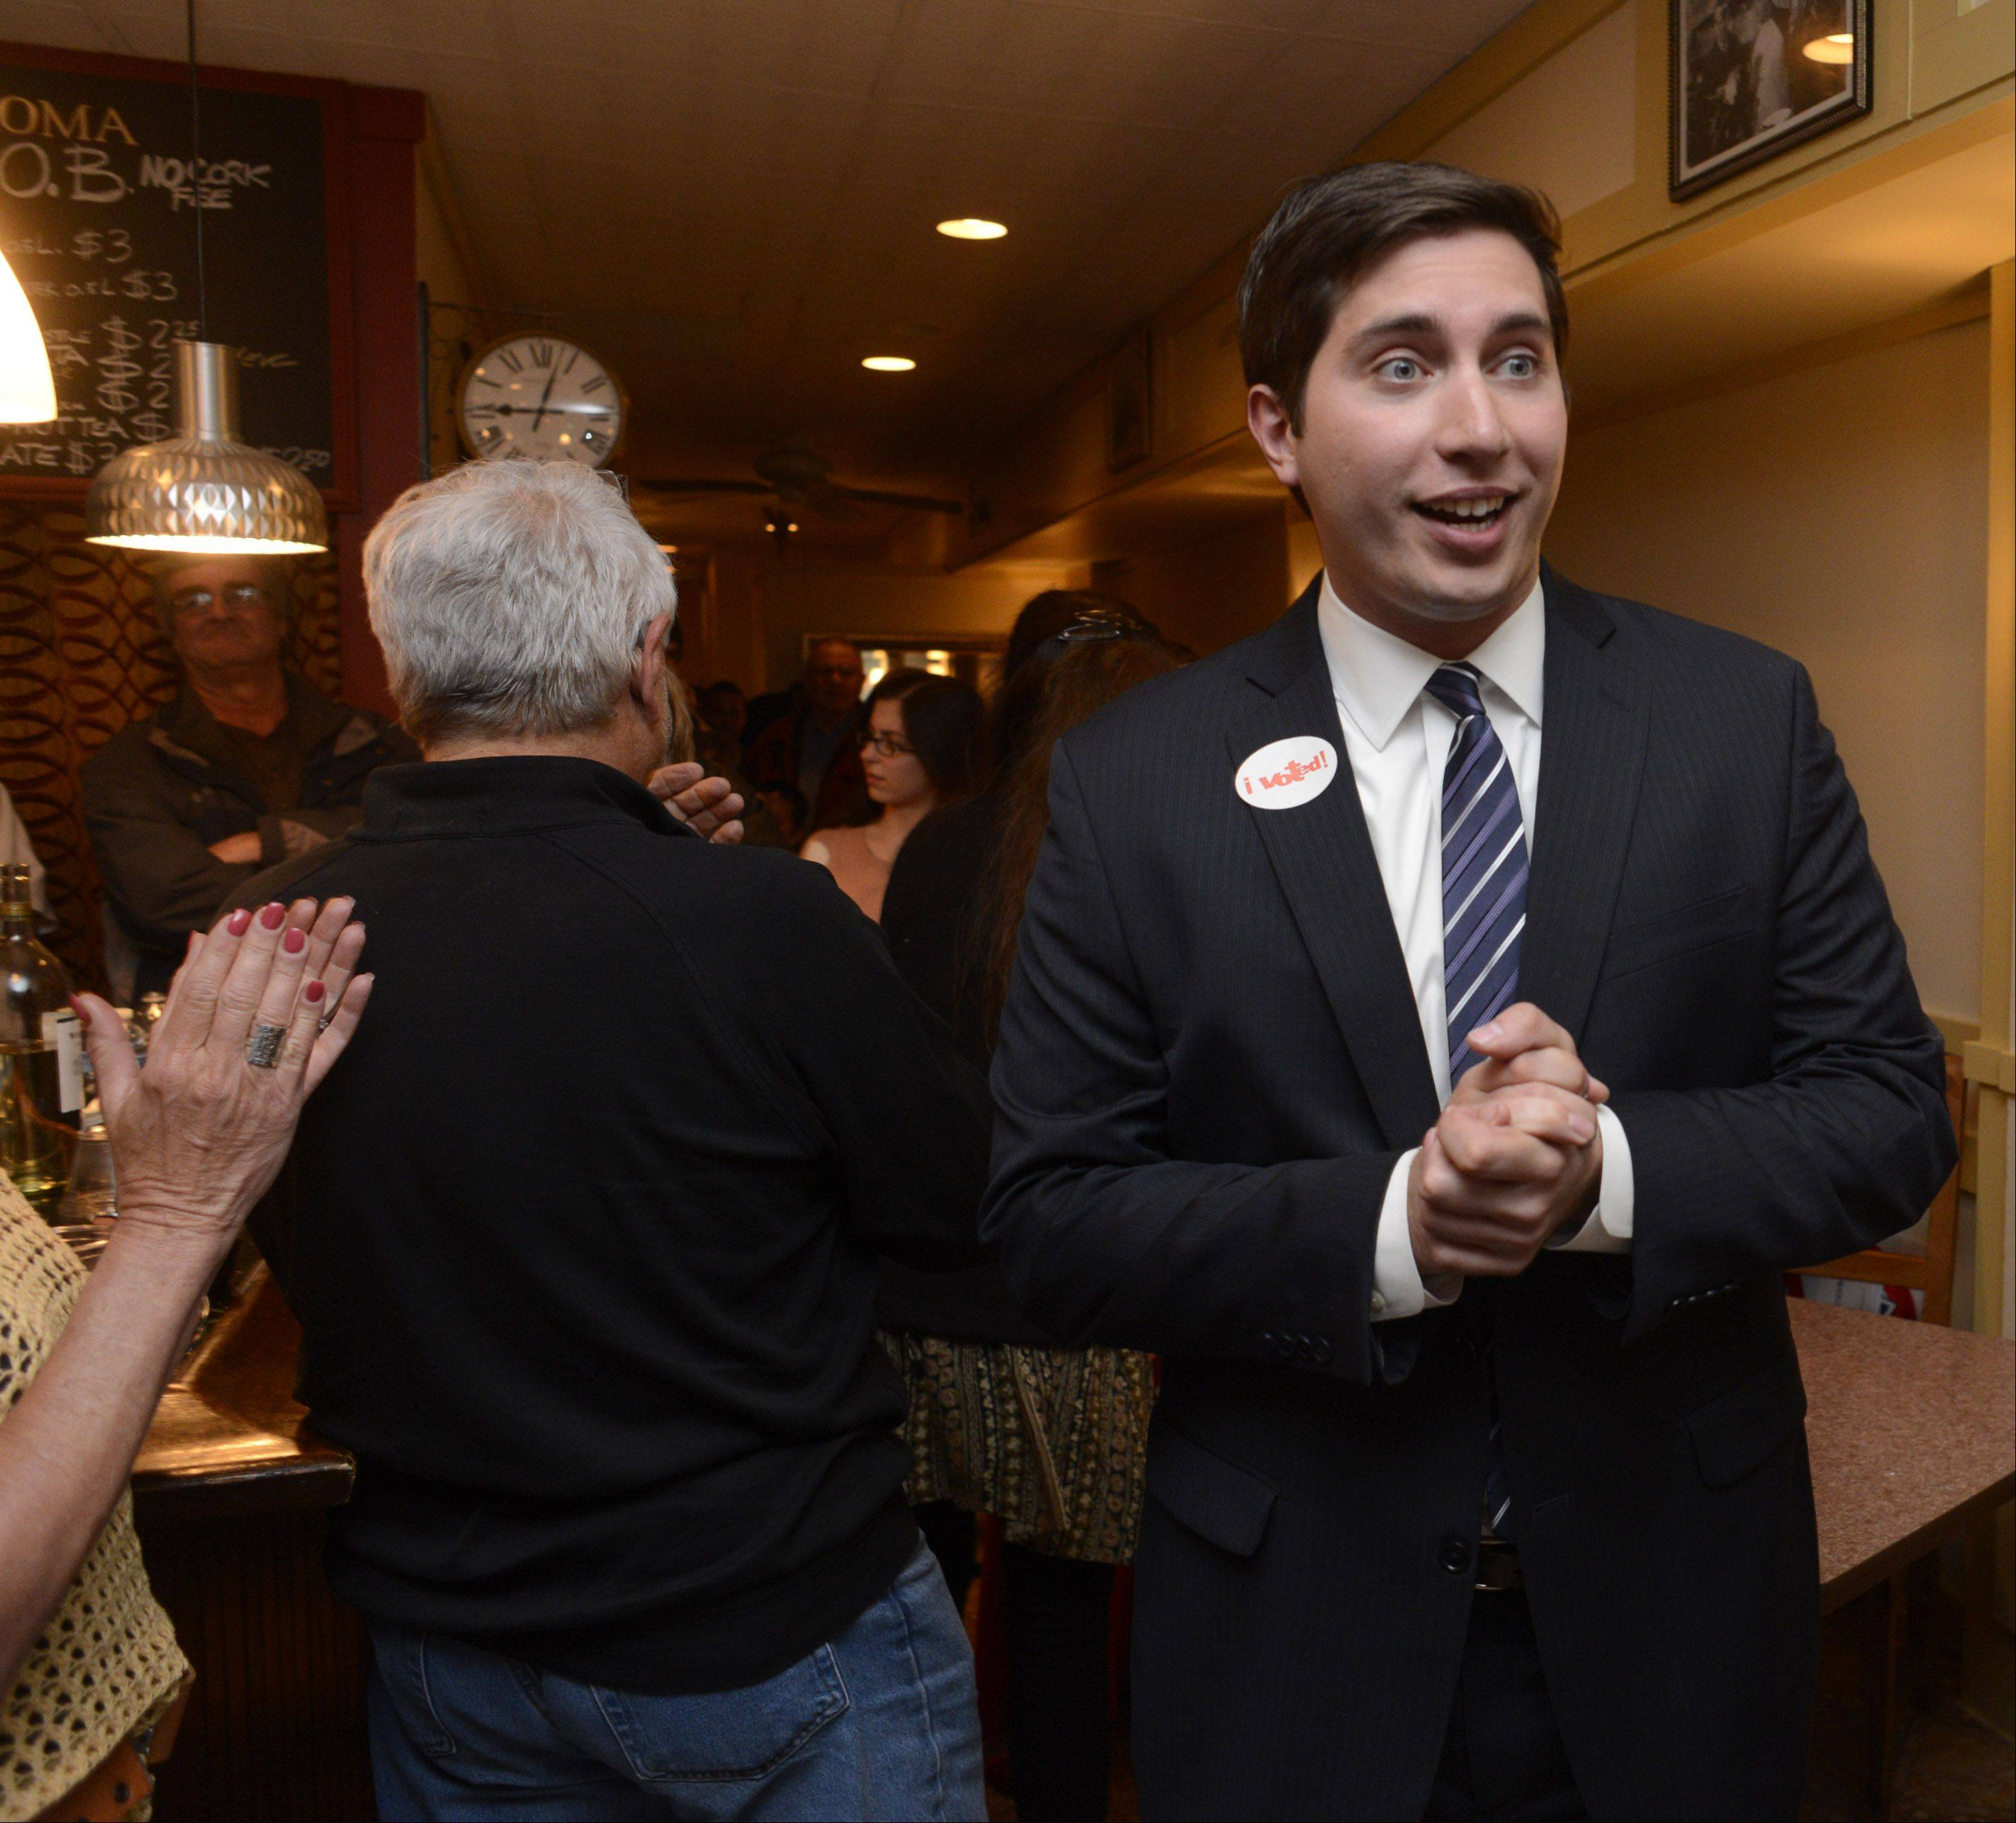 Des Plaines mayoral candidate Matthew Bogusz is greeted by supporters at Via Roma in Des Plaines on Election Night.